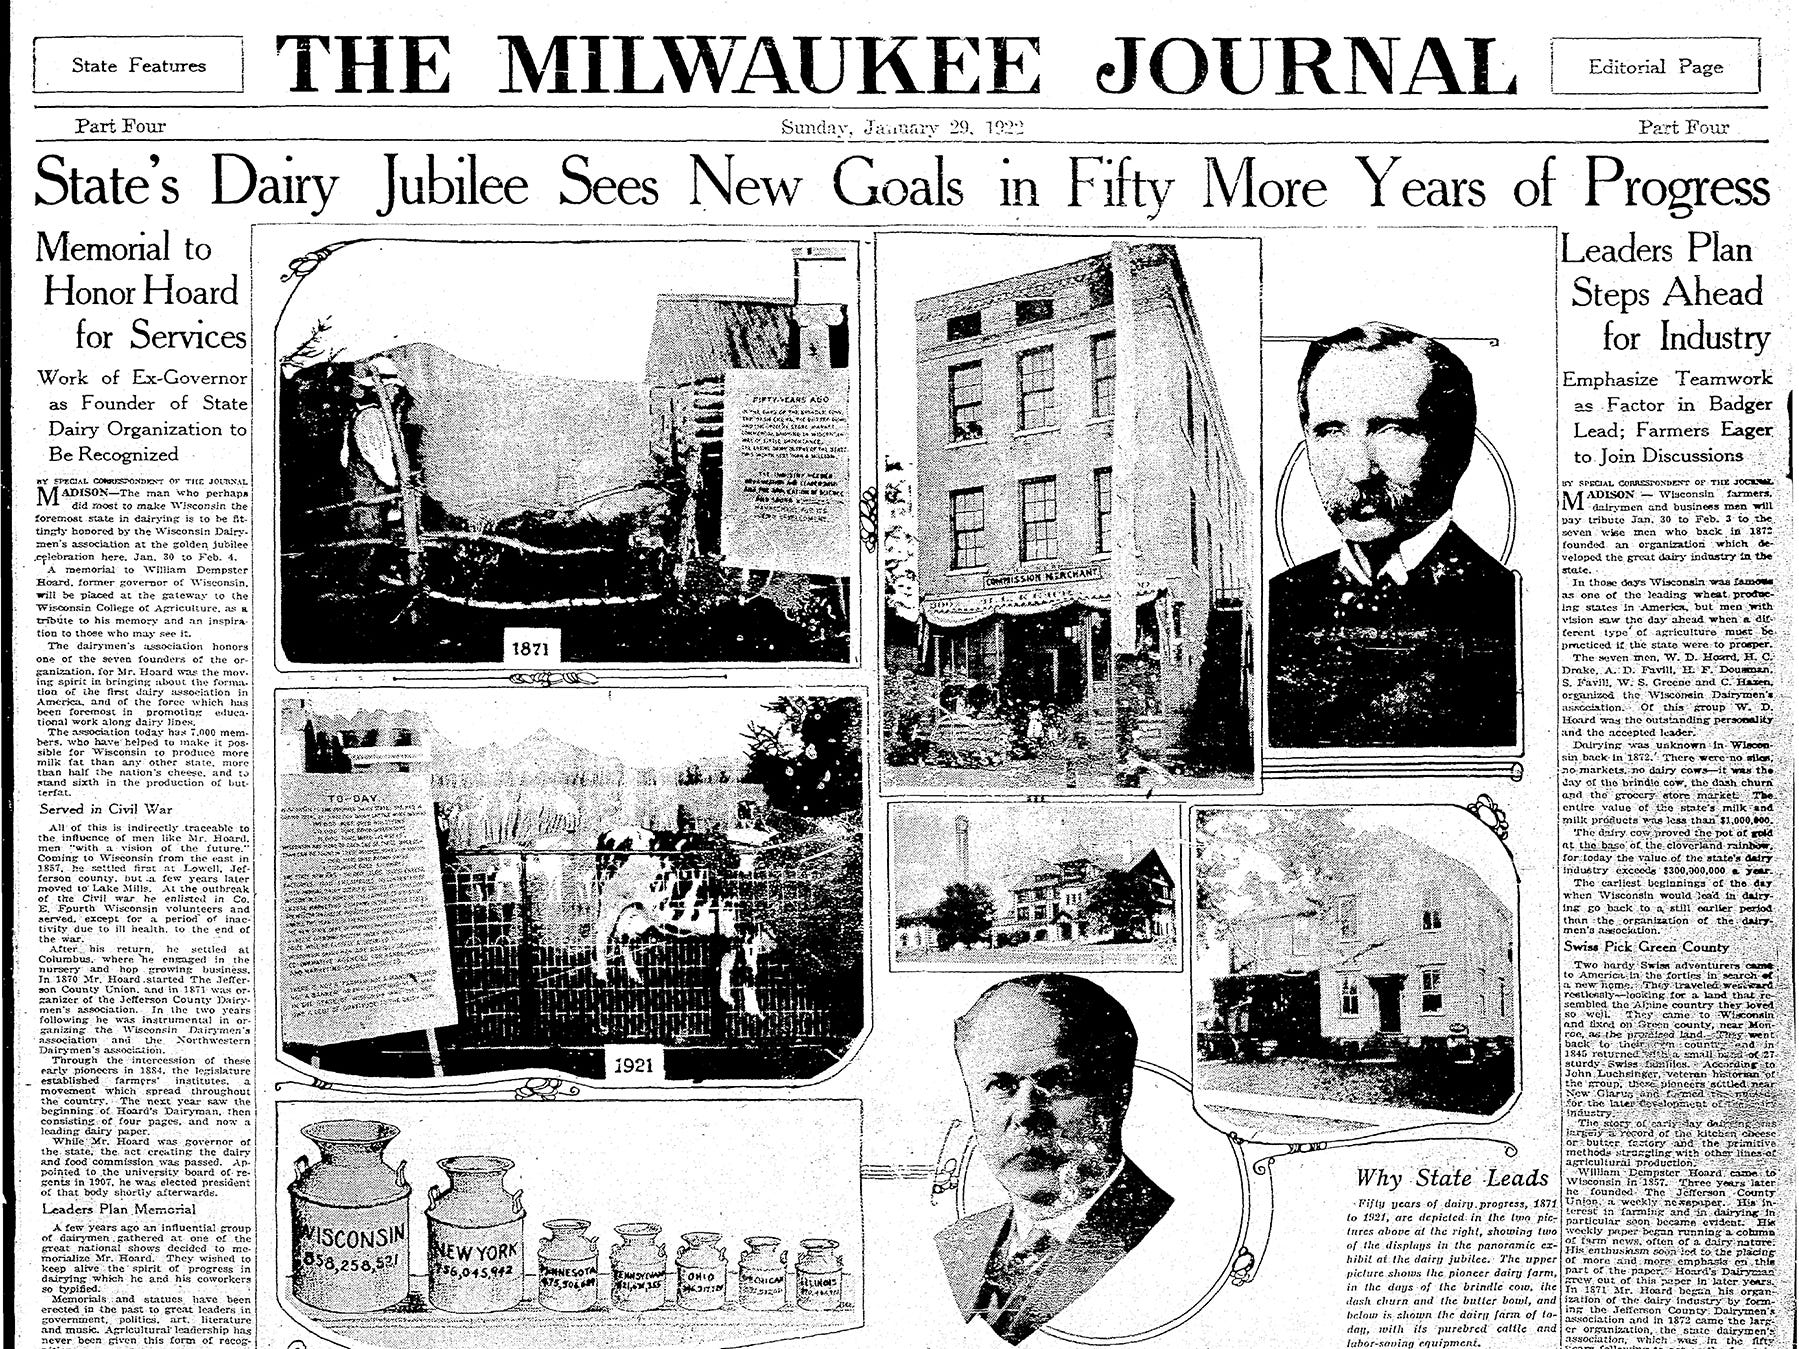 In 1922, Wisconsin's dairy industry was celebrating its 50th year. The January 29 edition of The Milwaukee Journal featured several stories outlining its success.